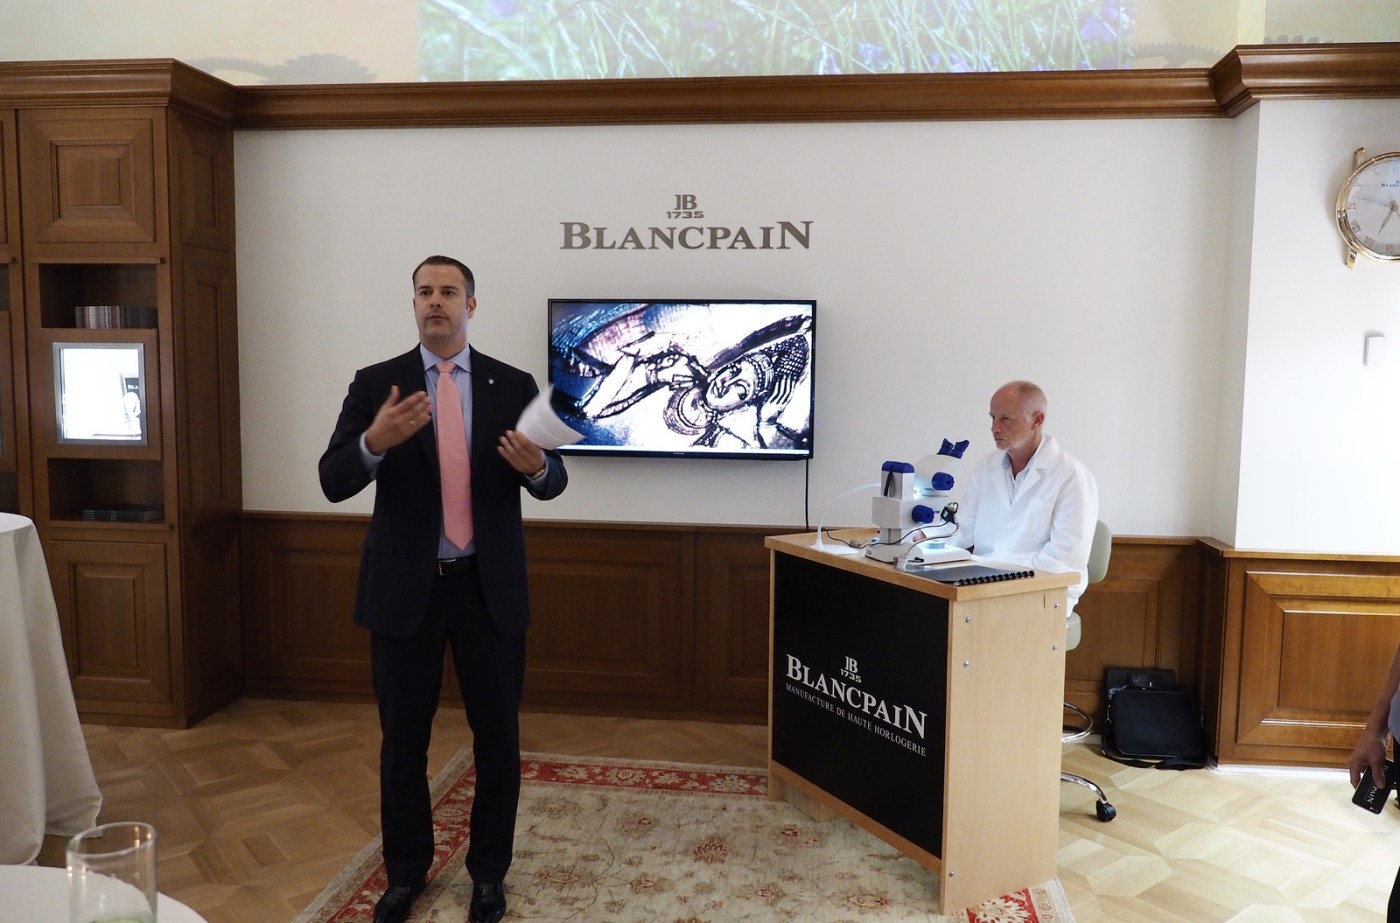 Blancpain Cocktail Party at NYC Boutique